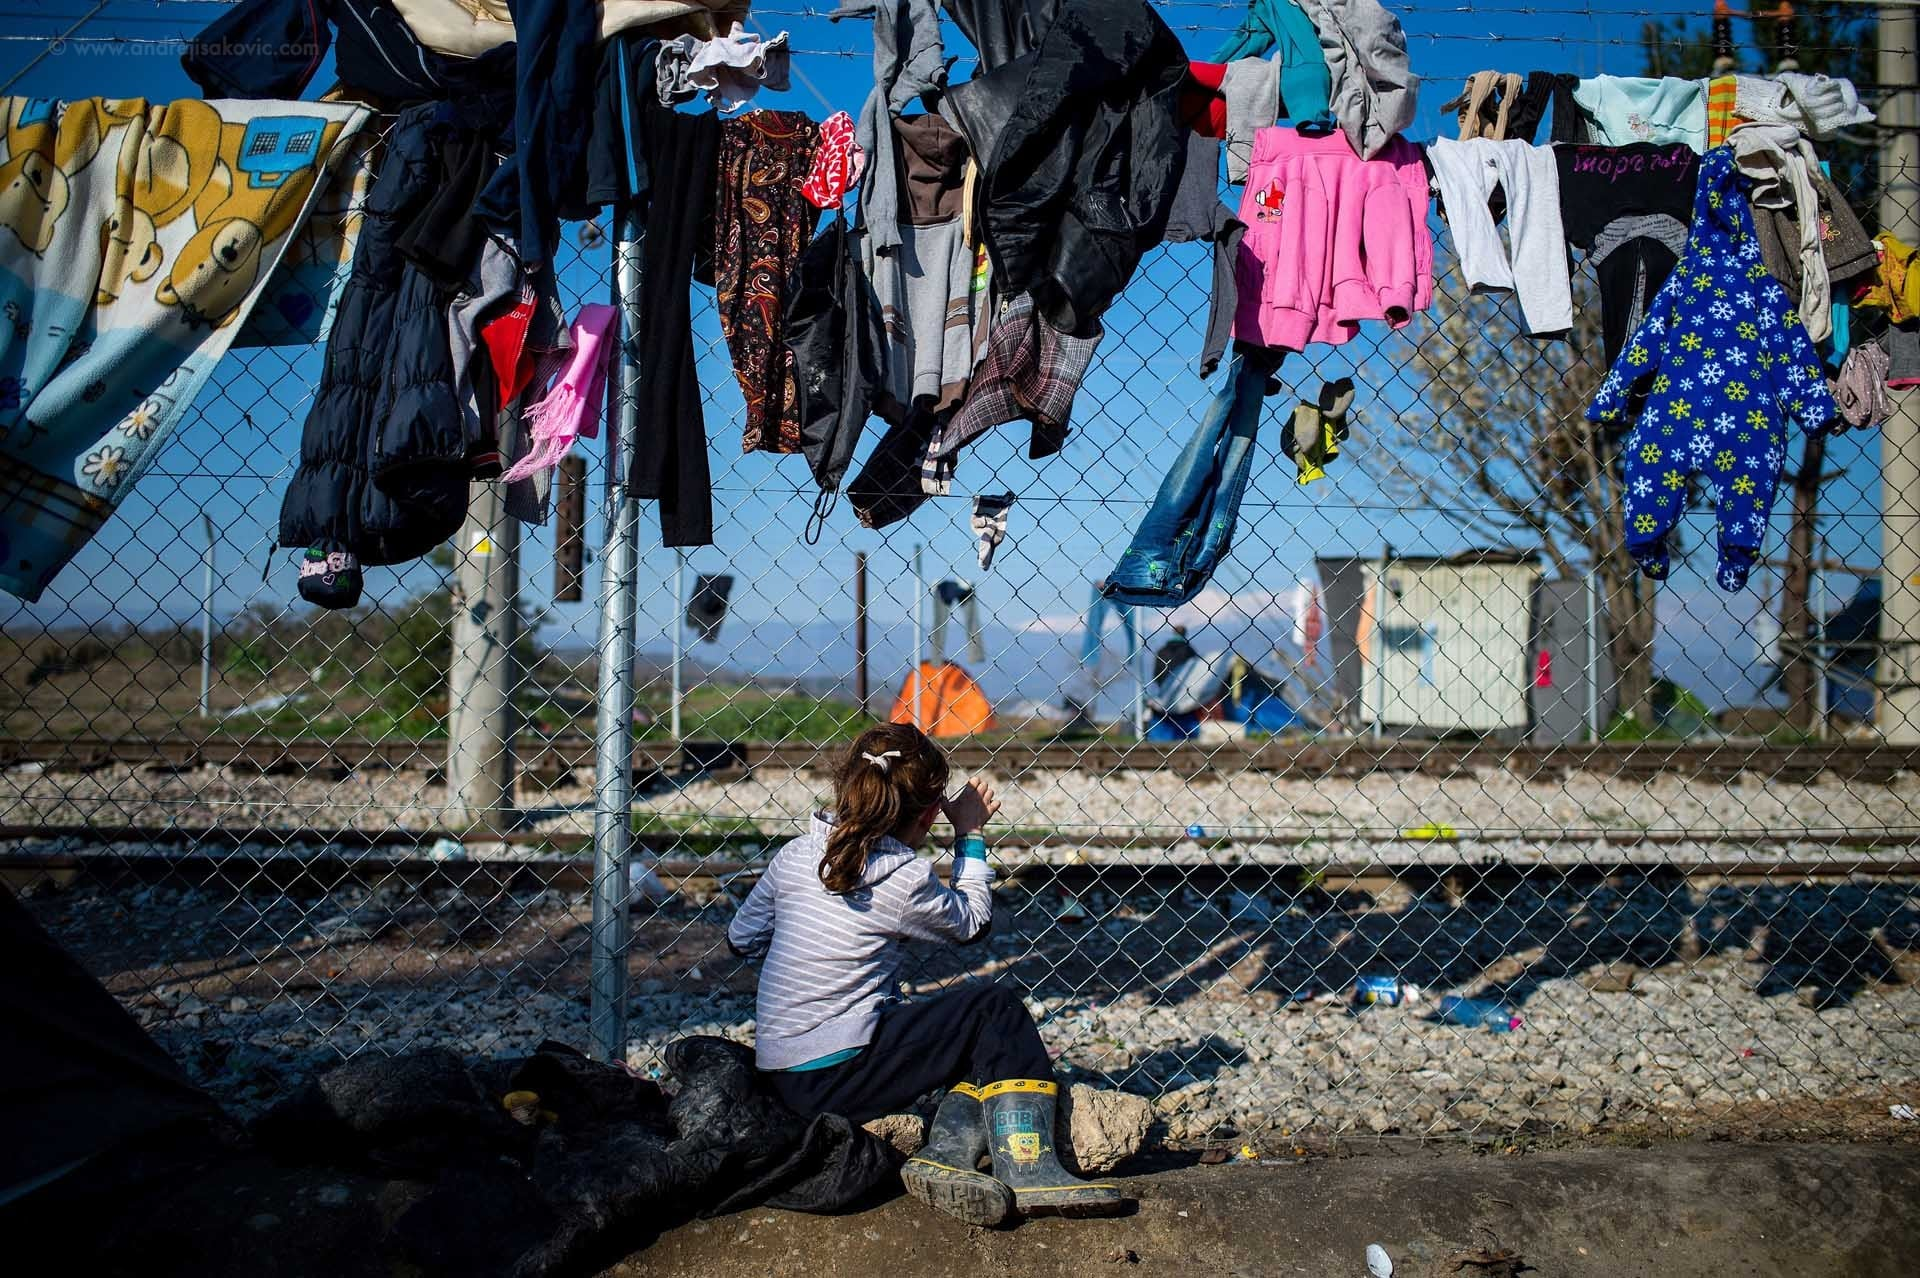 Forgotten in Idomeni